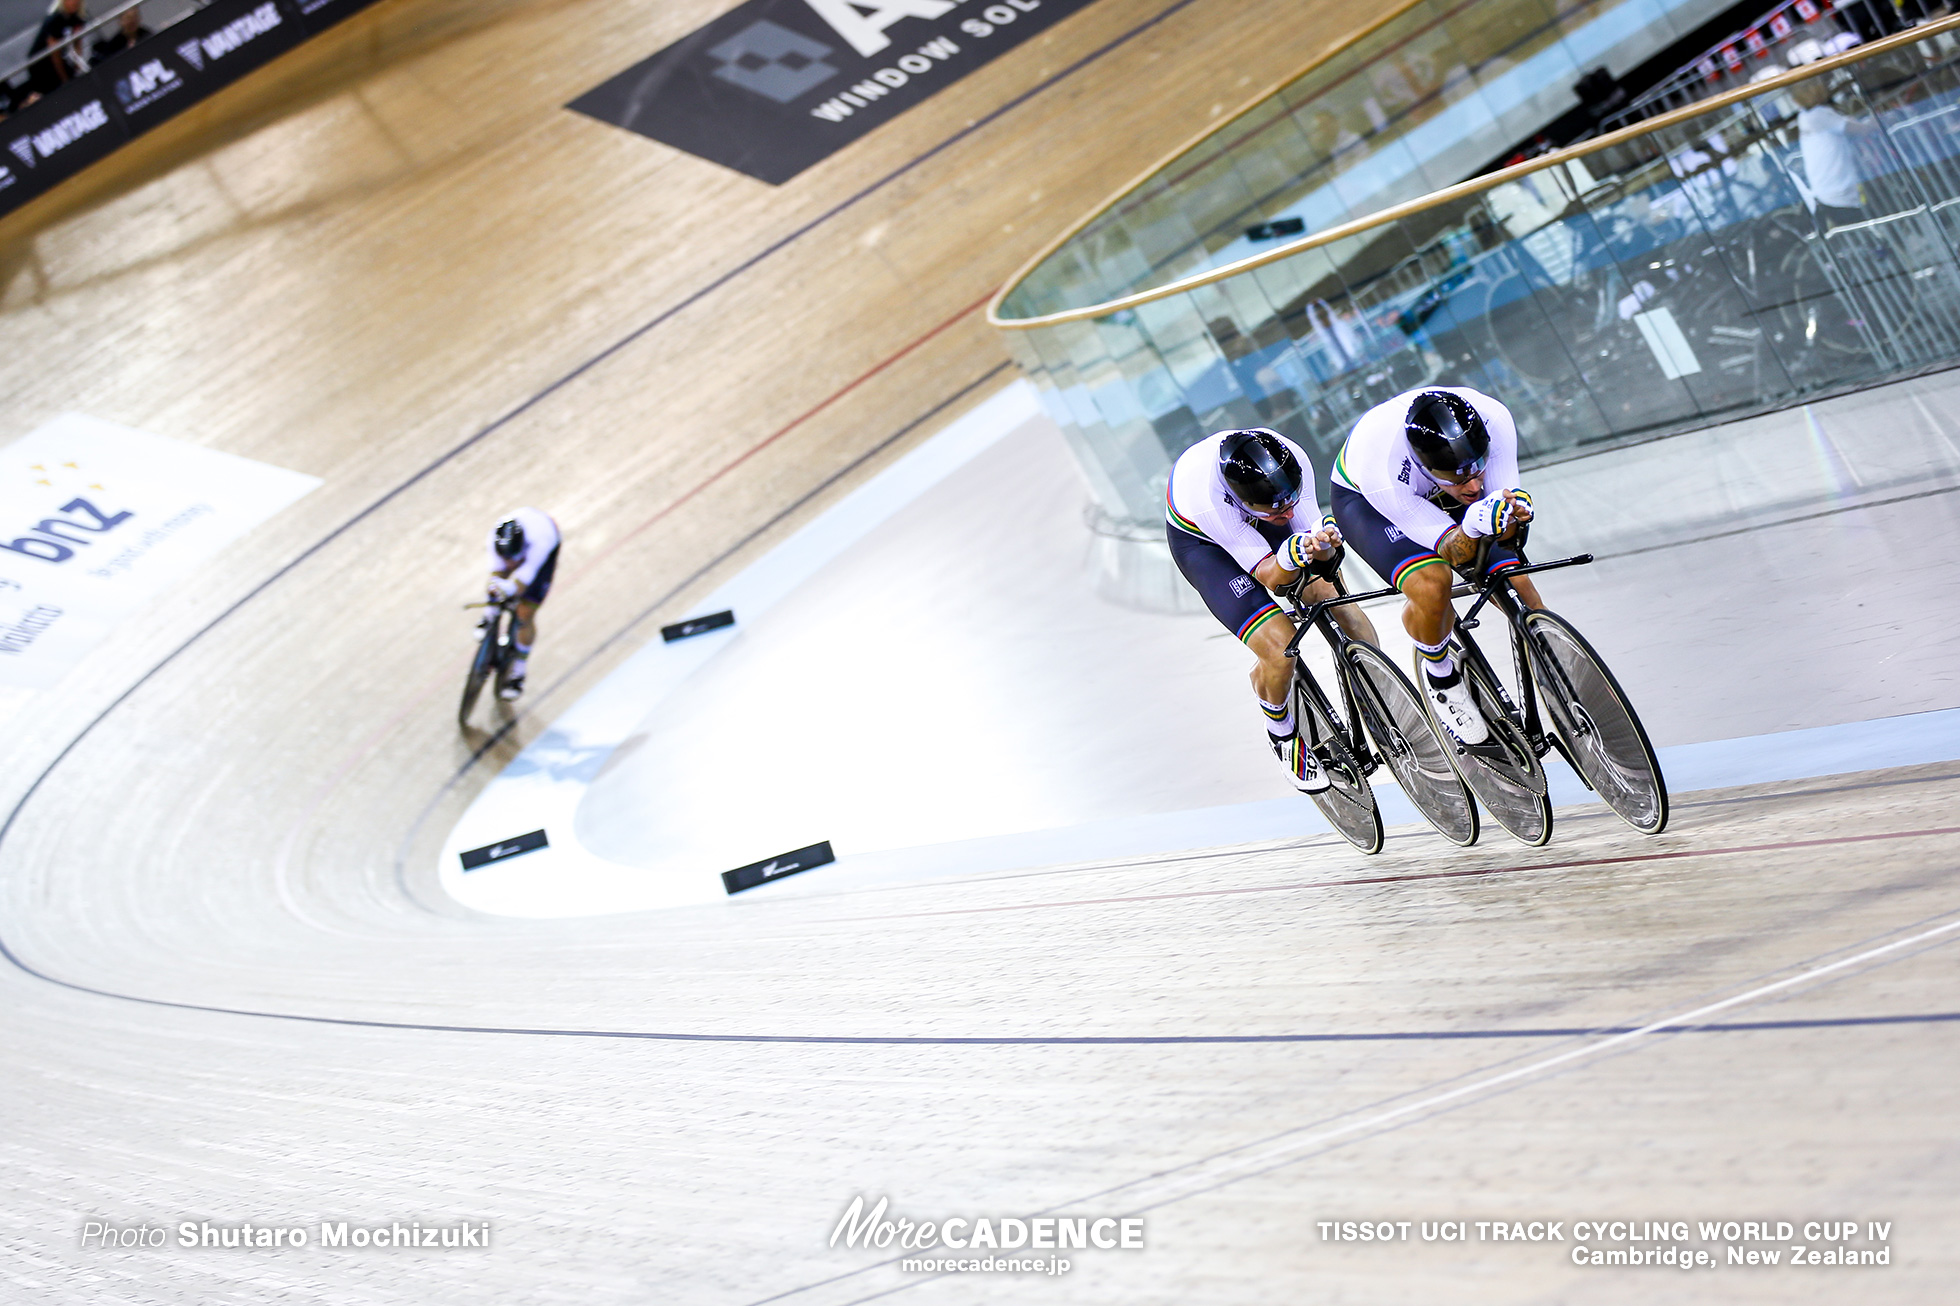 Final / Men's Team Pursuit / TISSOT UCI TRACK CYCLING WORLD CUP IV, Cambridge, New Zealand